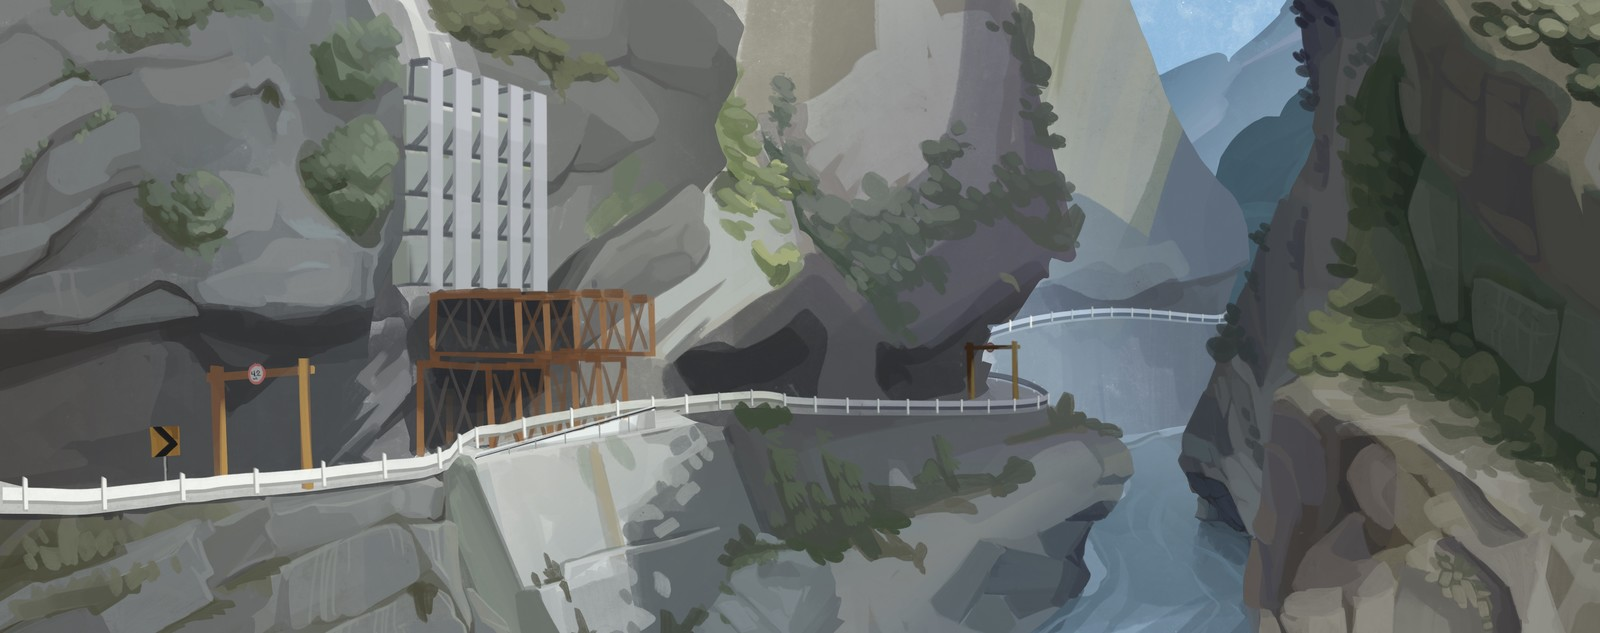 Plein air painting Taroko Gorge